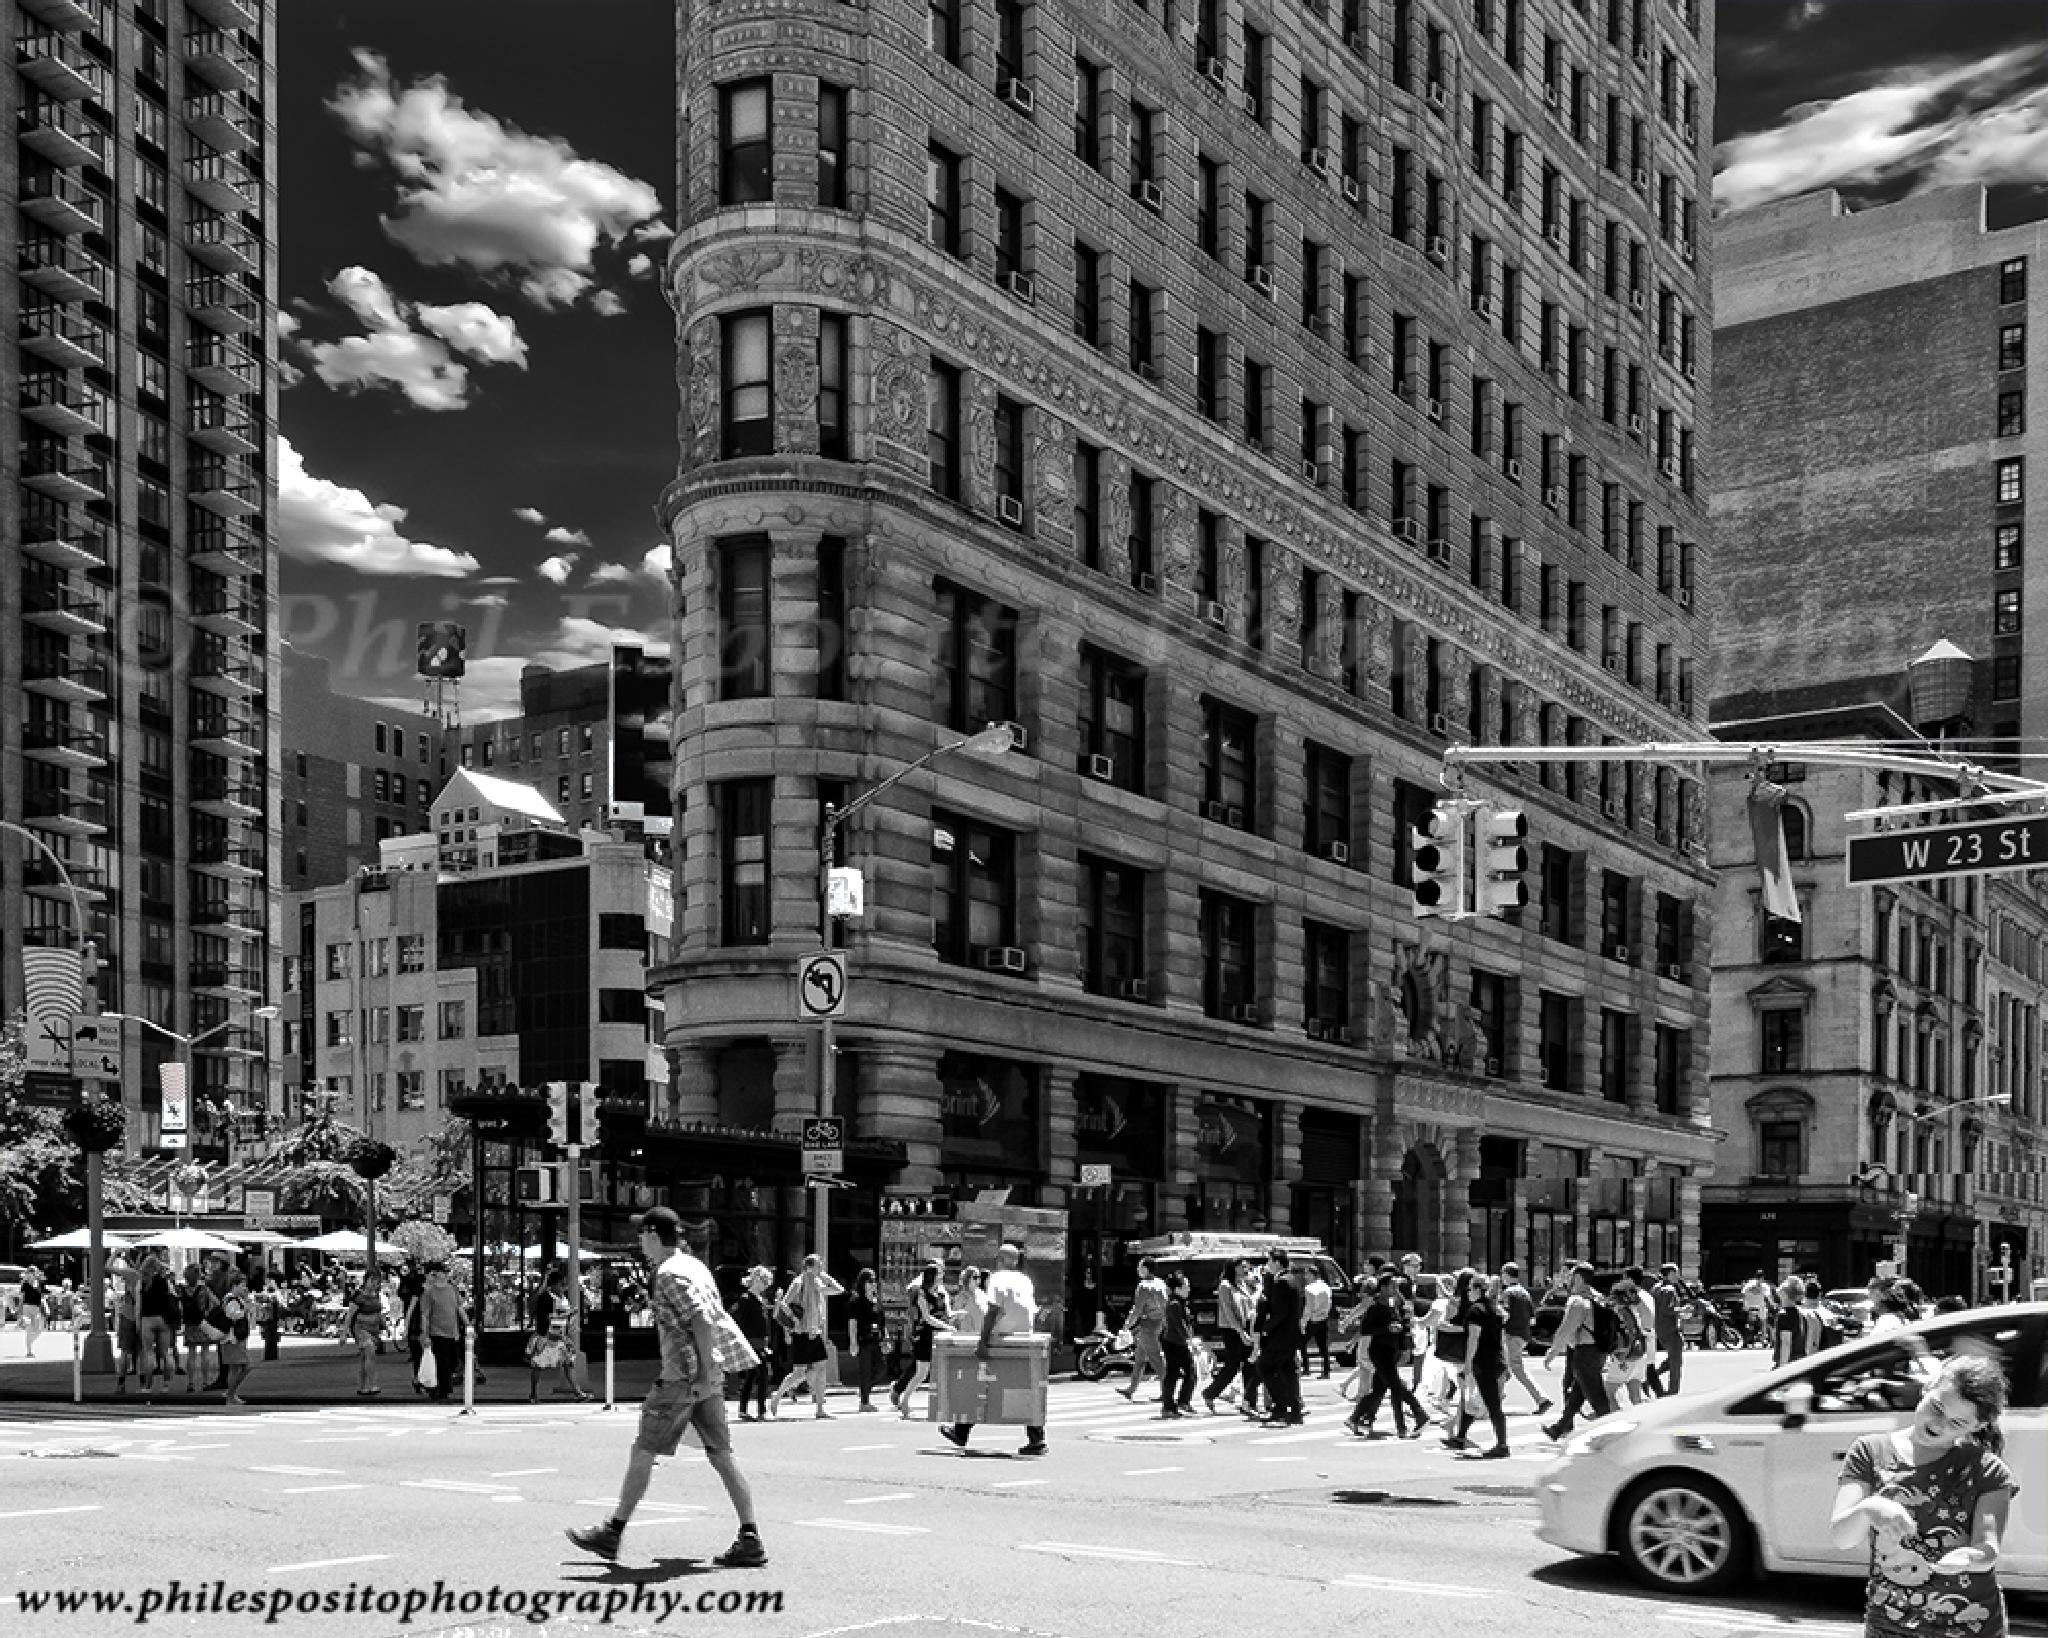 West 23 street on o summer's day by Phil Esposito